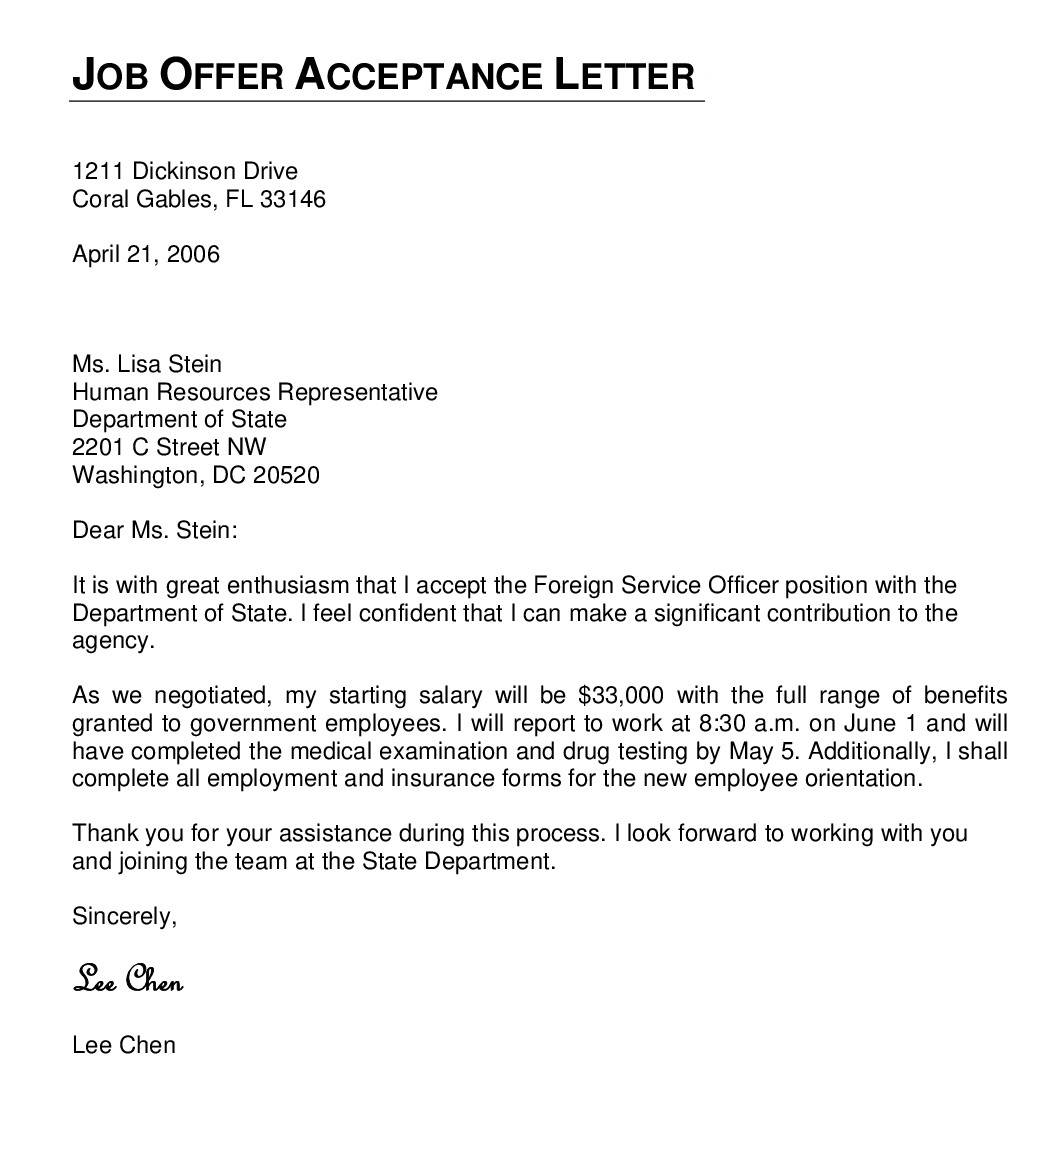 job offer letter offer letters amp appointment letter and business 13353 | job offer acceptance letter format 001